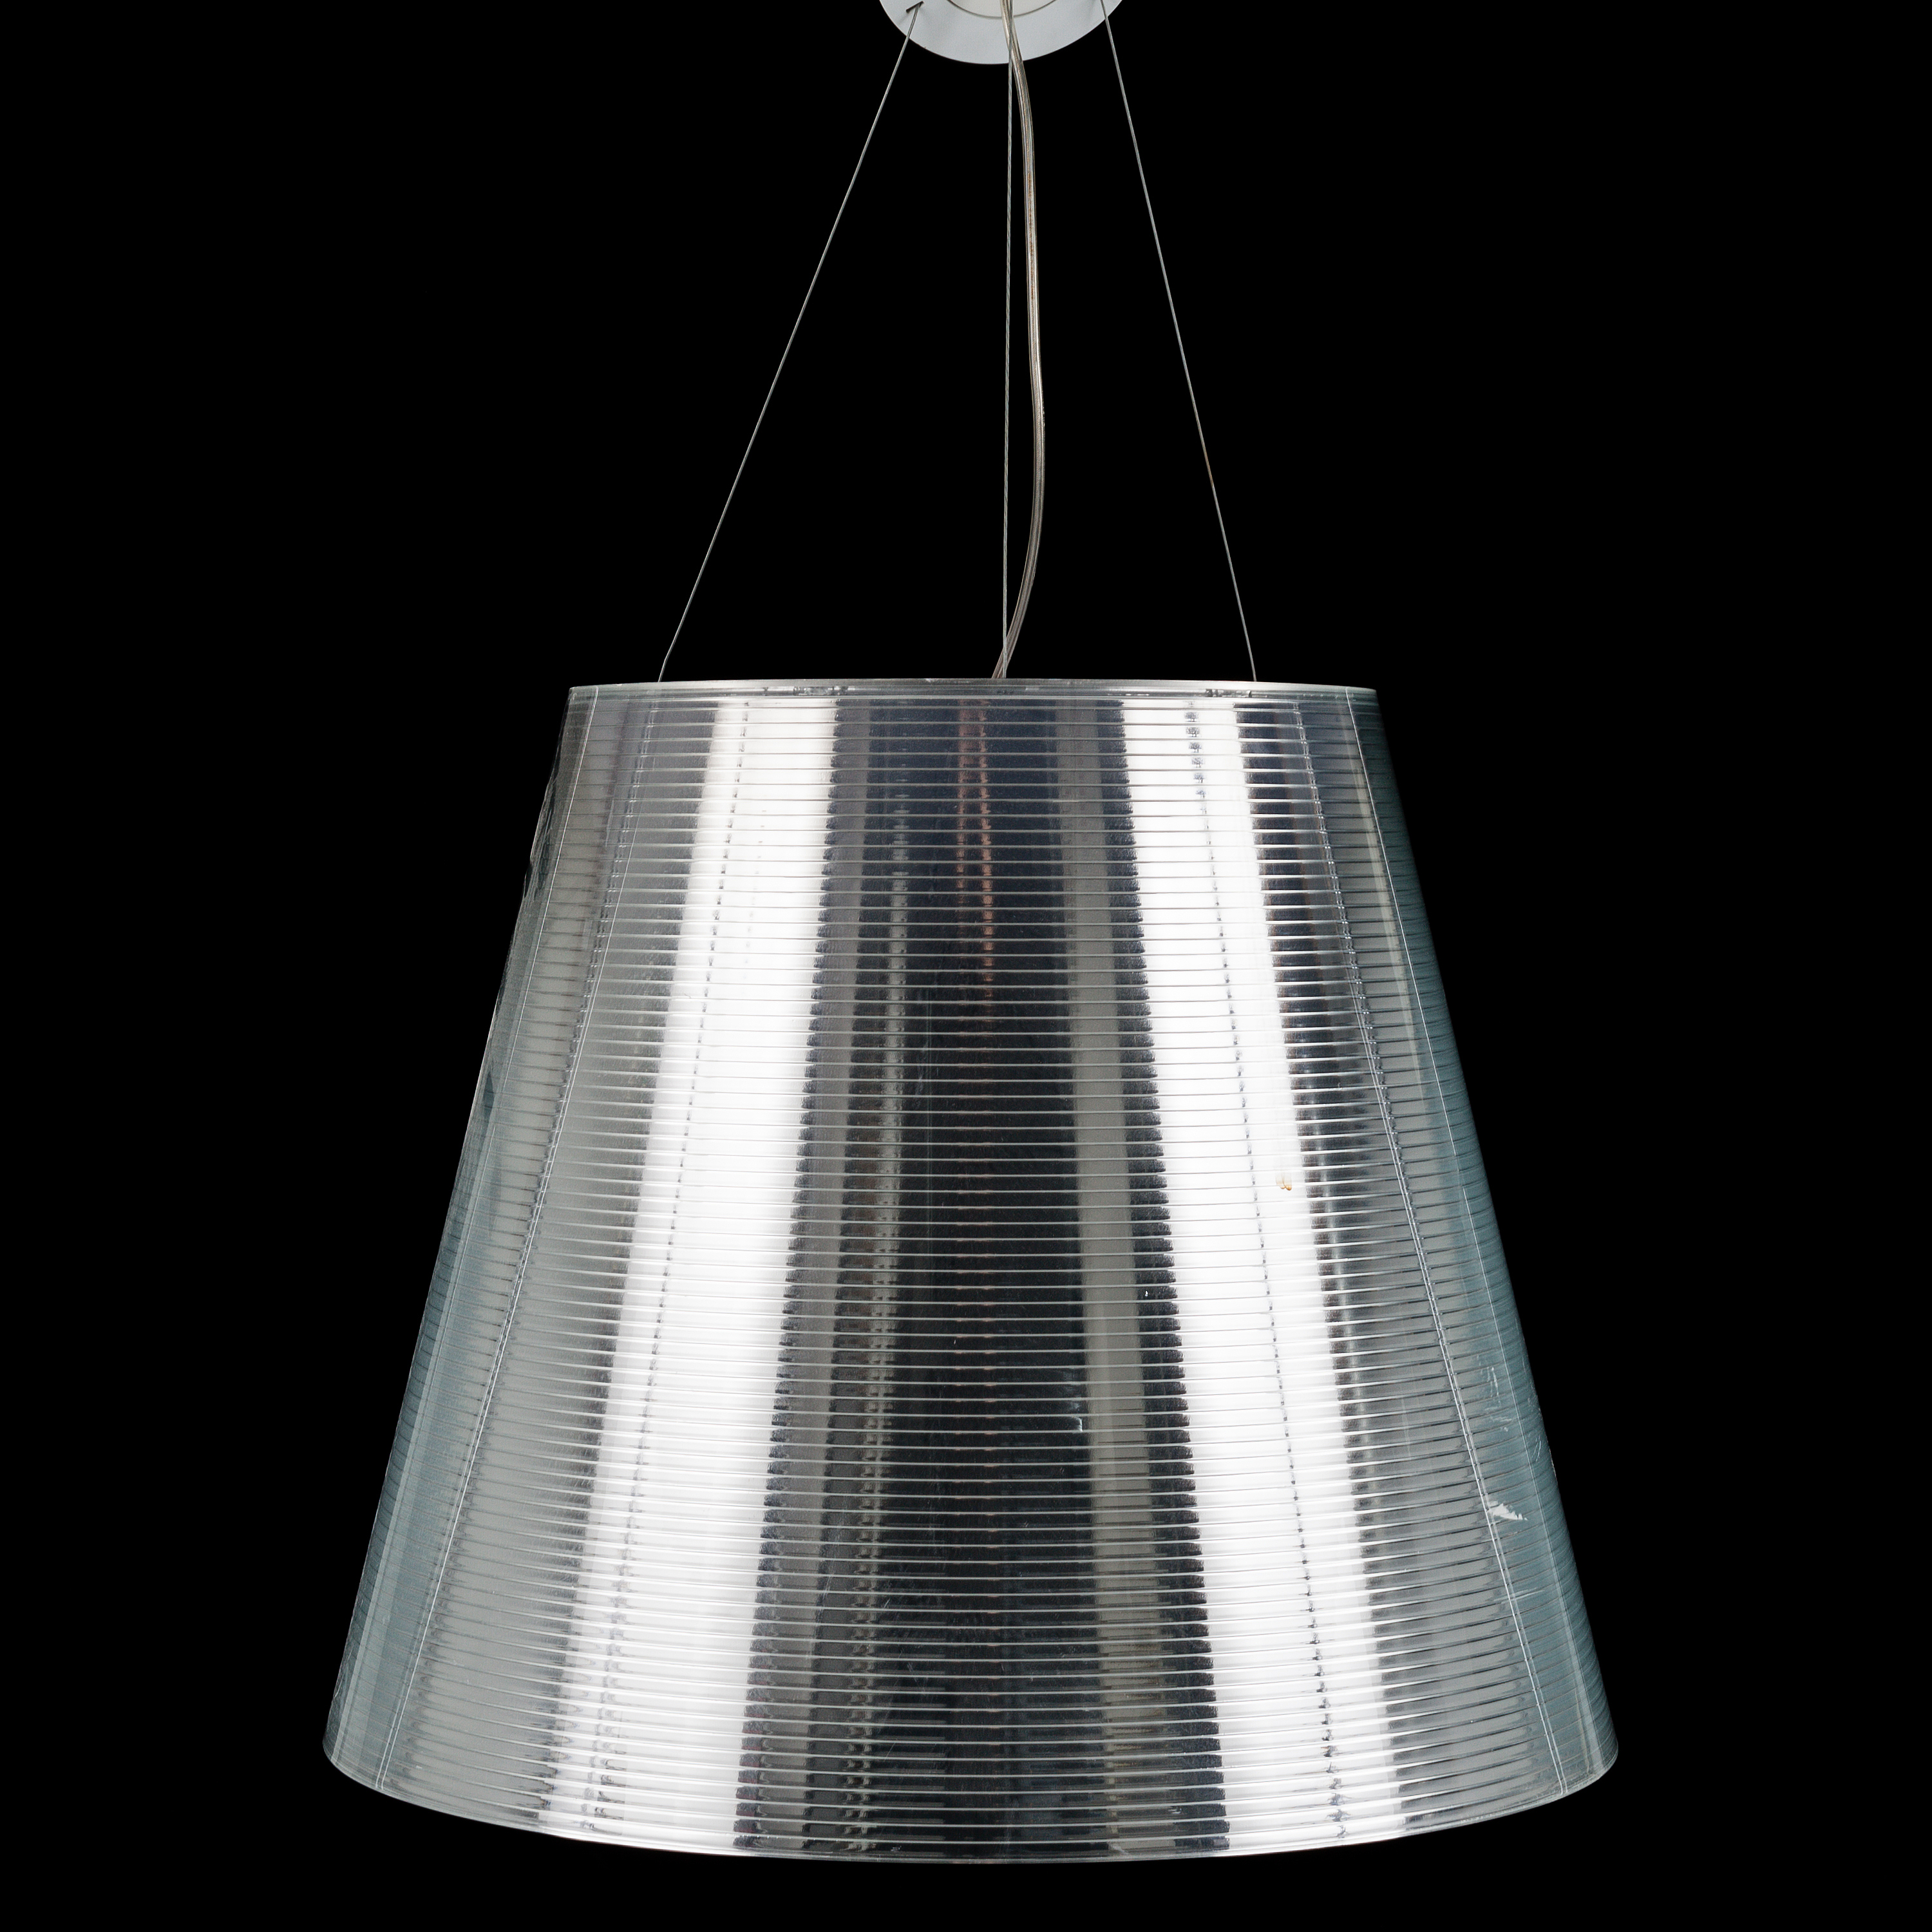 Philippe starck a philippe starck k tribe s3 ceiling light from 10930108 bukobject arubaitofo Images